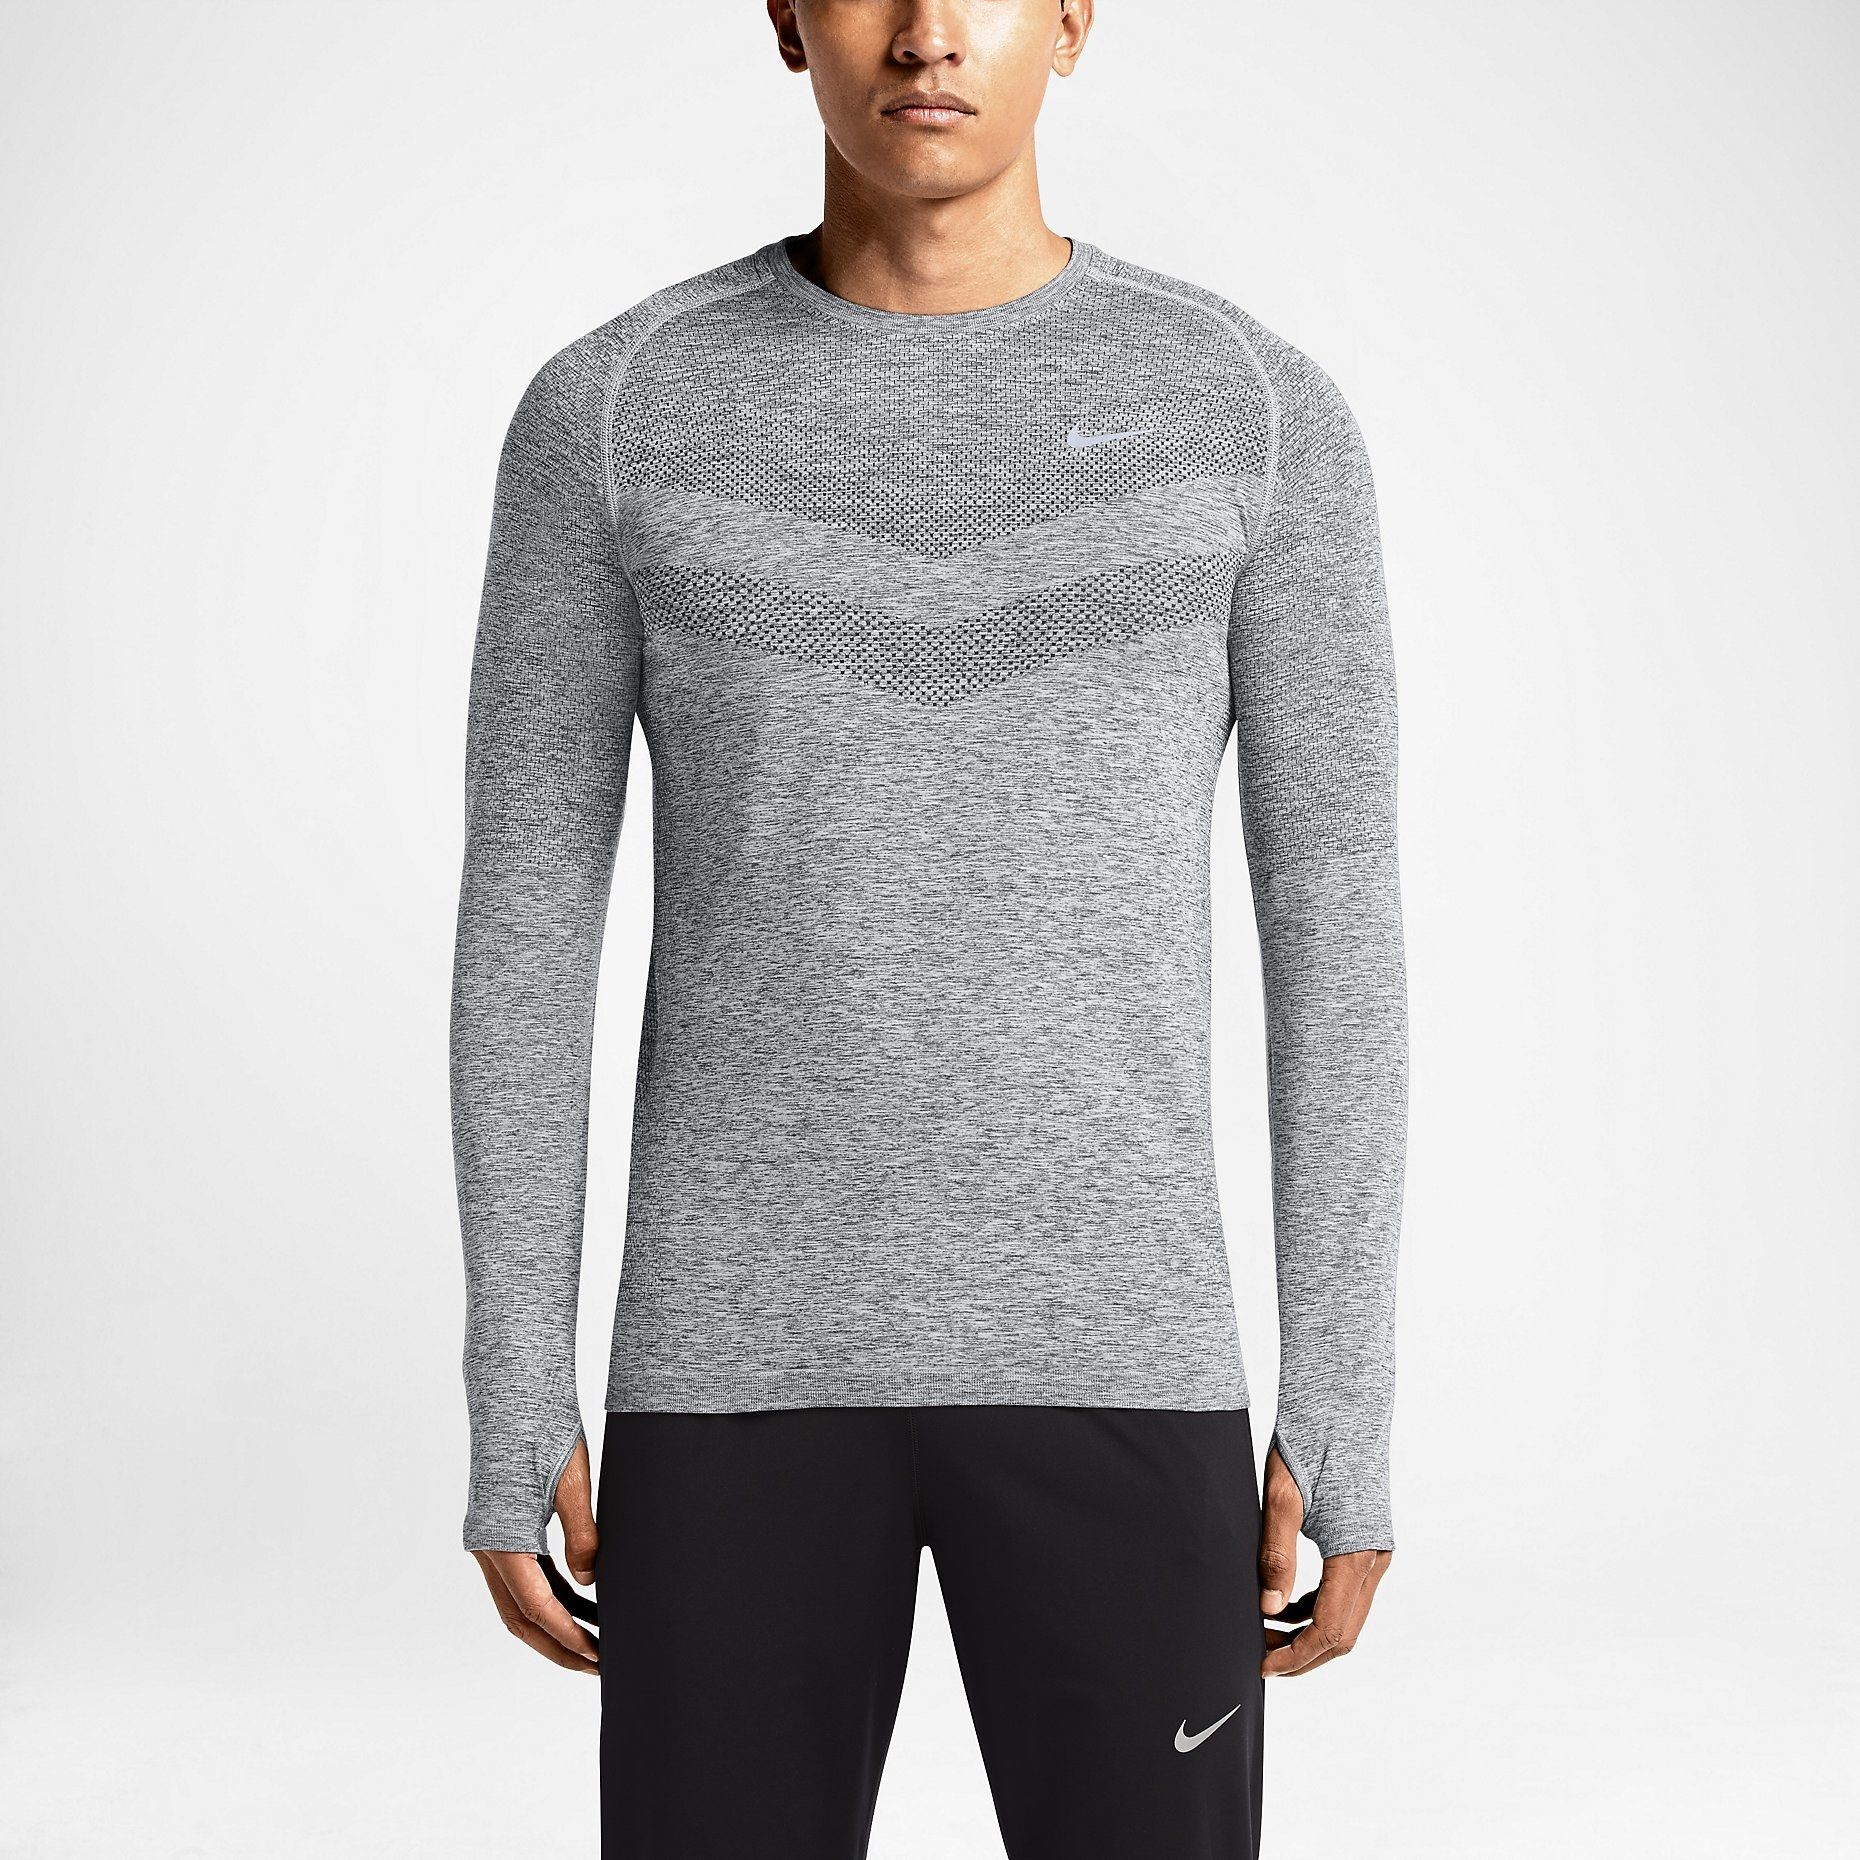 cb59d5c4 Michael B. Jordan Creed Workout Gear Outfits | GQ Mens Running Shirts,  Sports Training